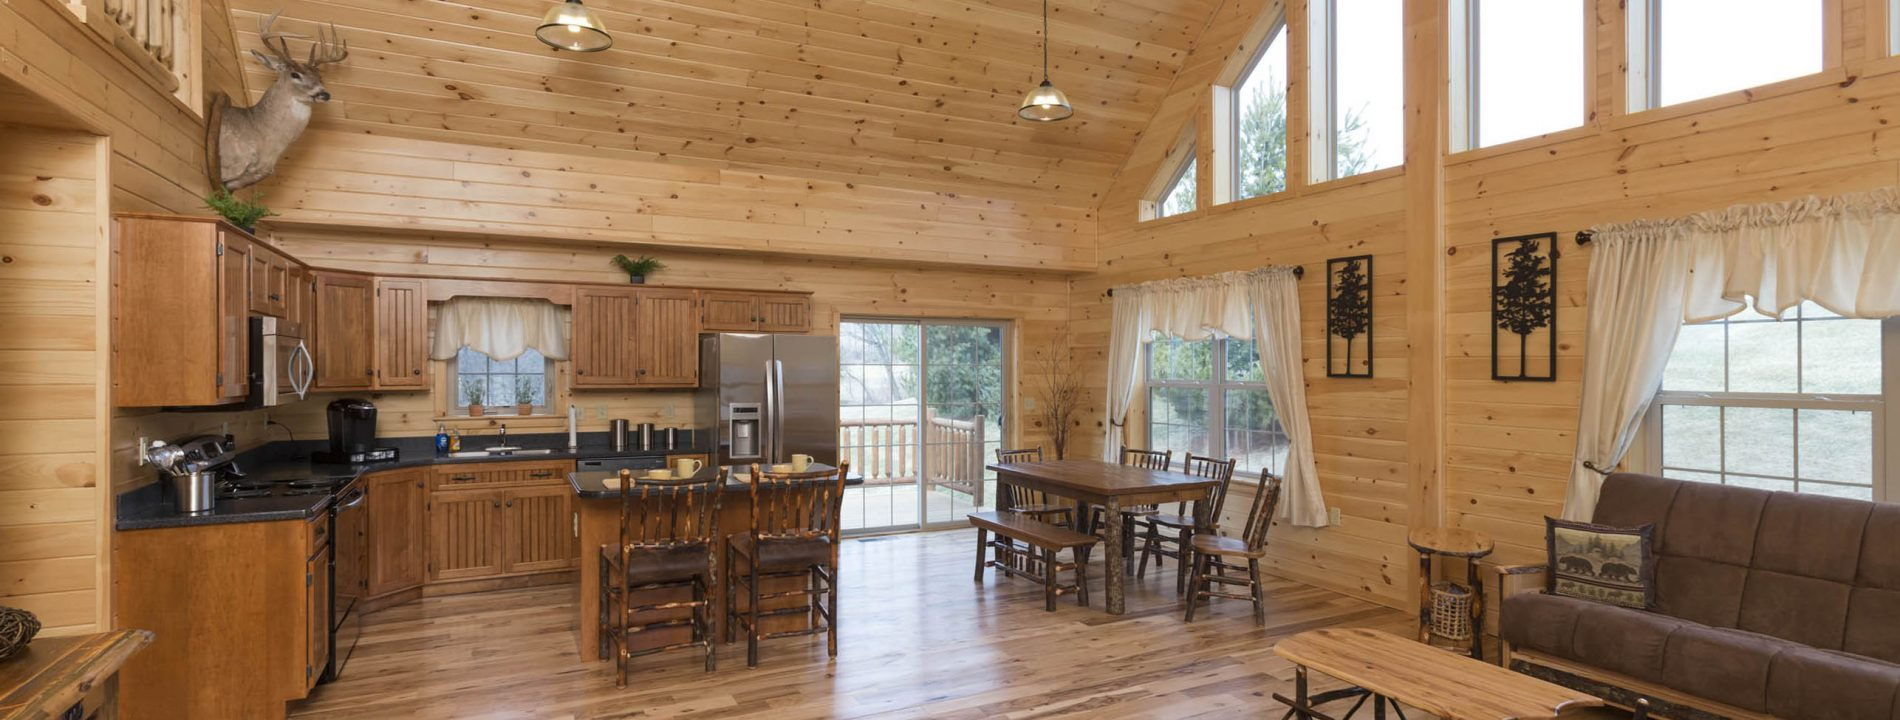 premium wood Log Cabins for hunting camp